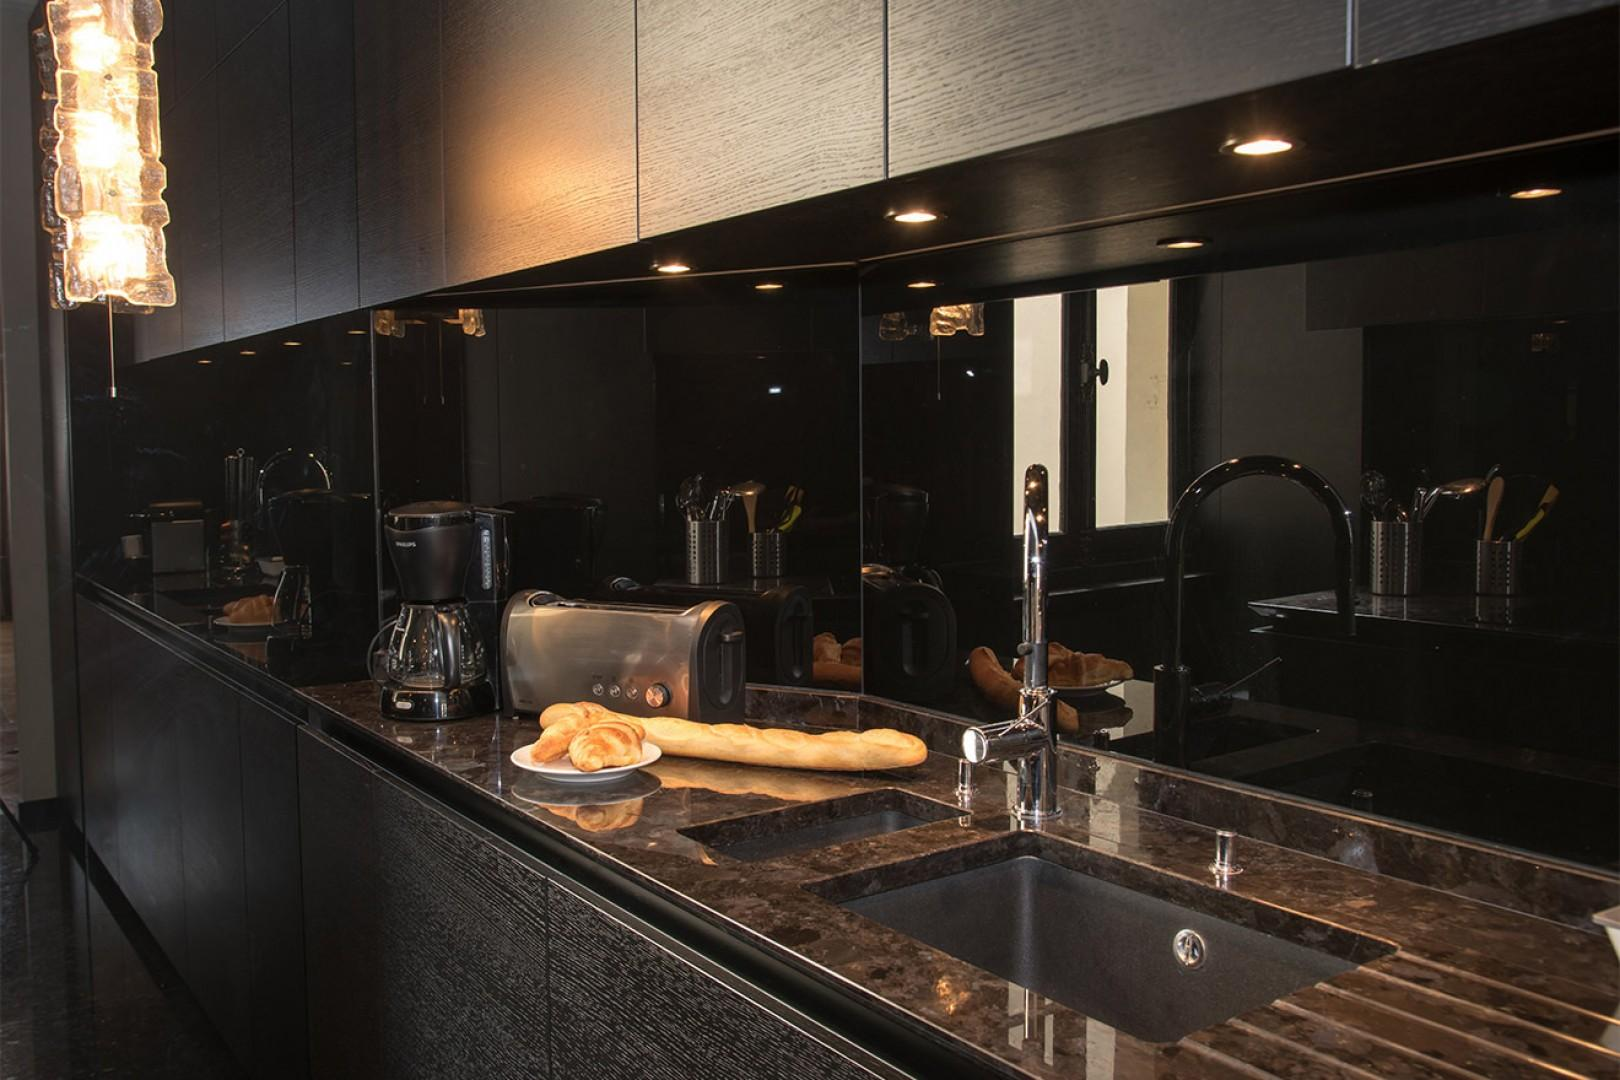 The sophisticated kitchen features high-quality modern appliances.